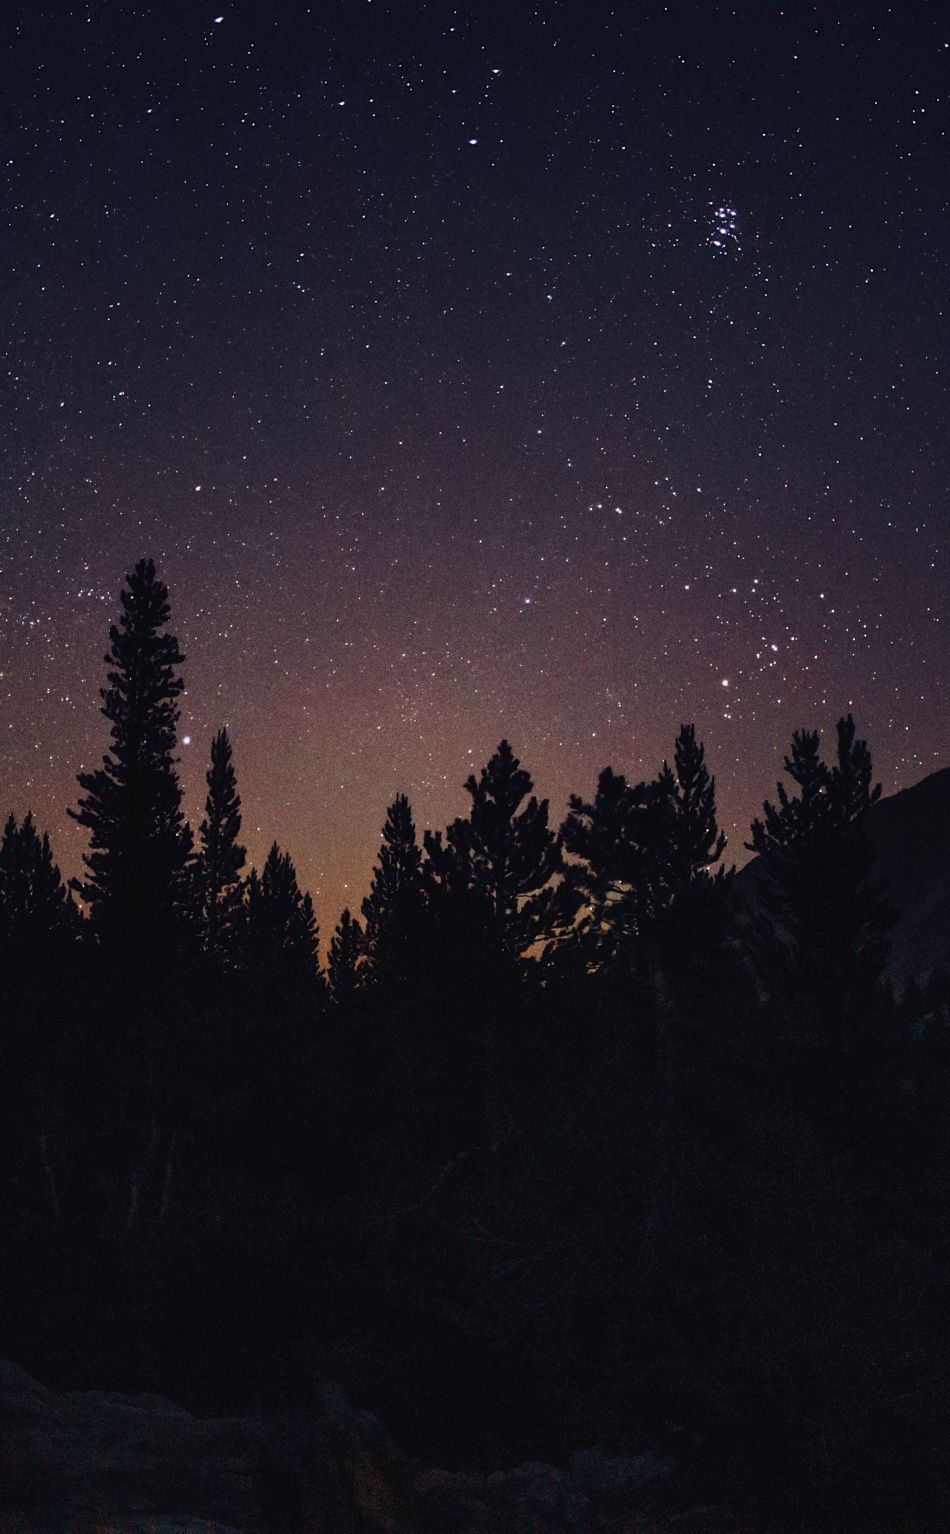 950x1534 Night Out Tree Starry Sky Forest Silhouette Nature Wallpaper Night Sky Wallpaper Forest Silhouette Sky Aesthetic